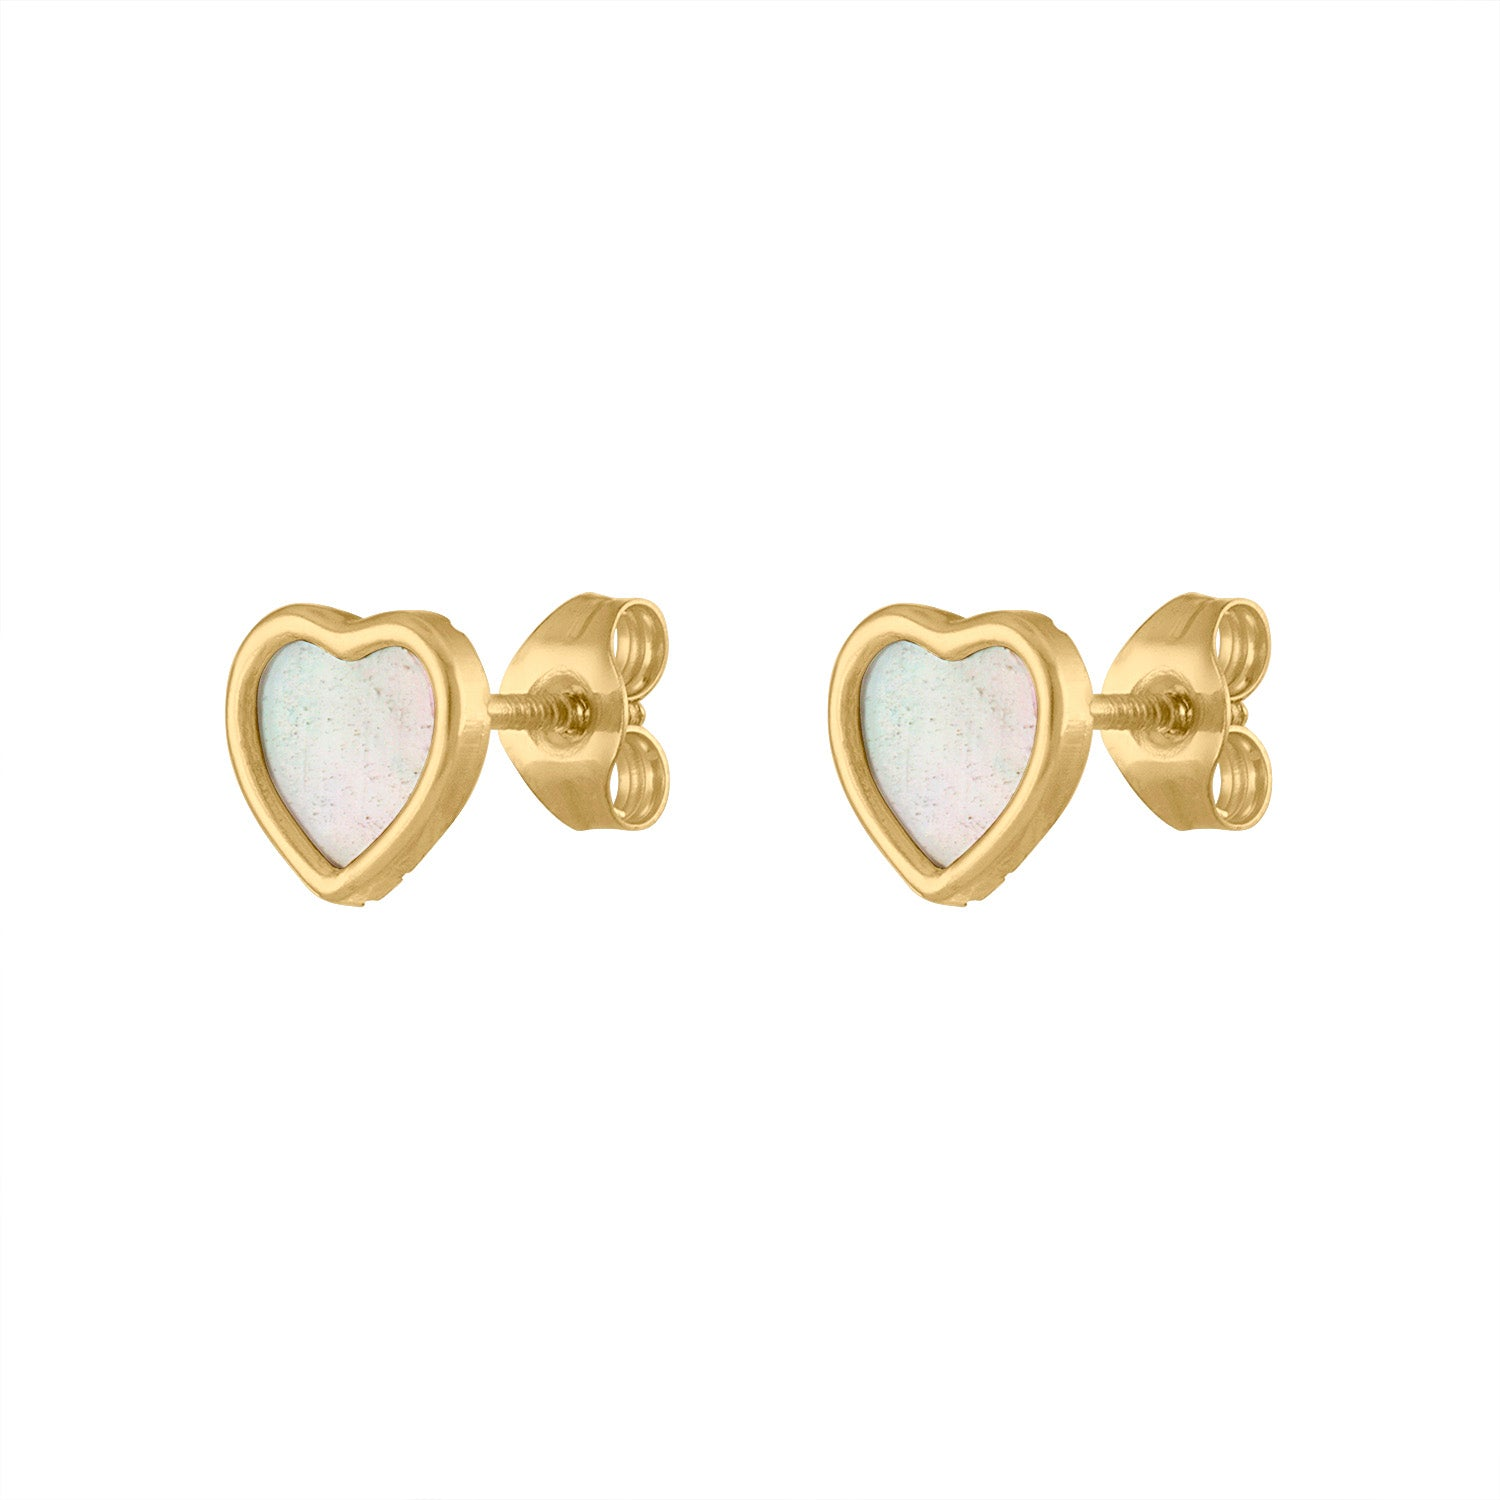 14KT GOLD MOTHER OF PEARL SMALL HEART STUD EARRING